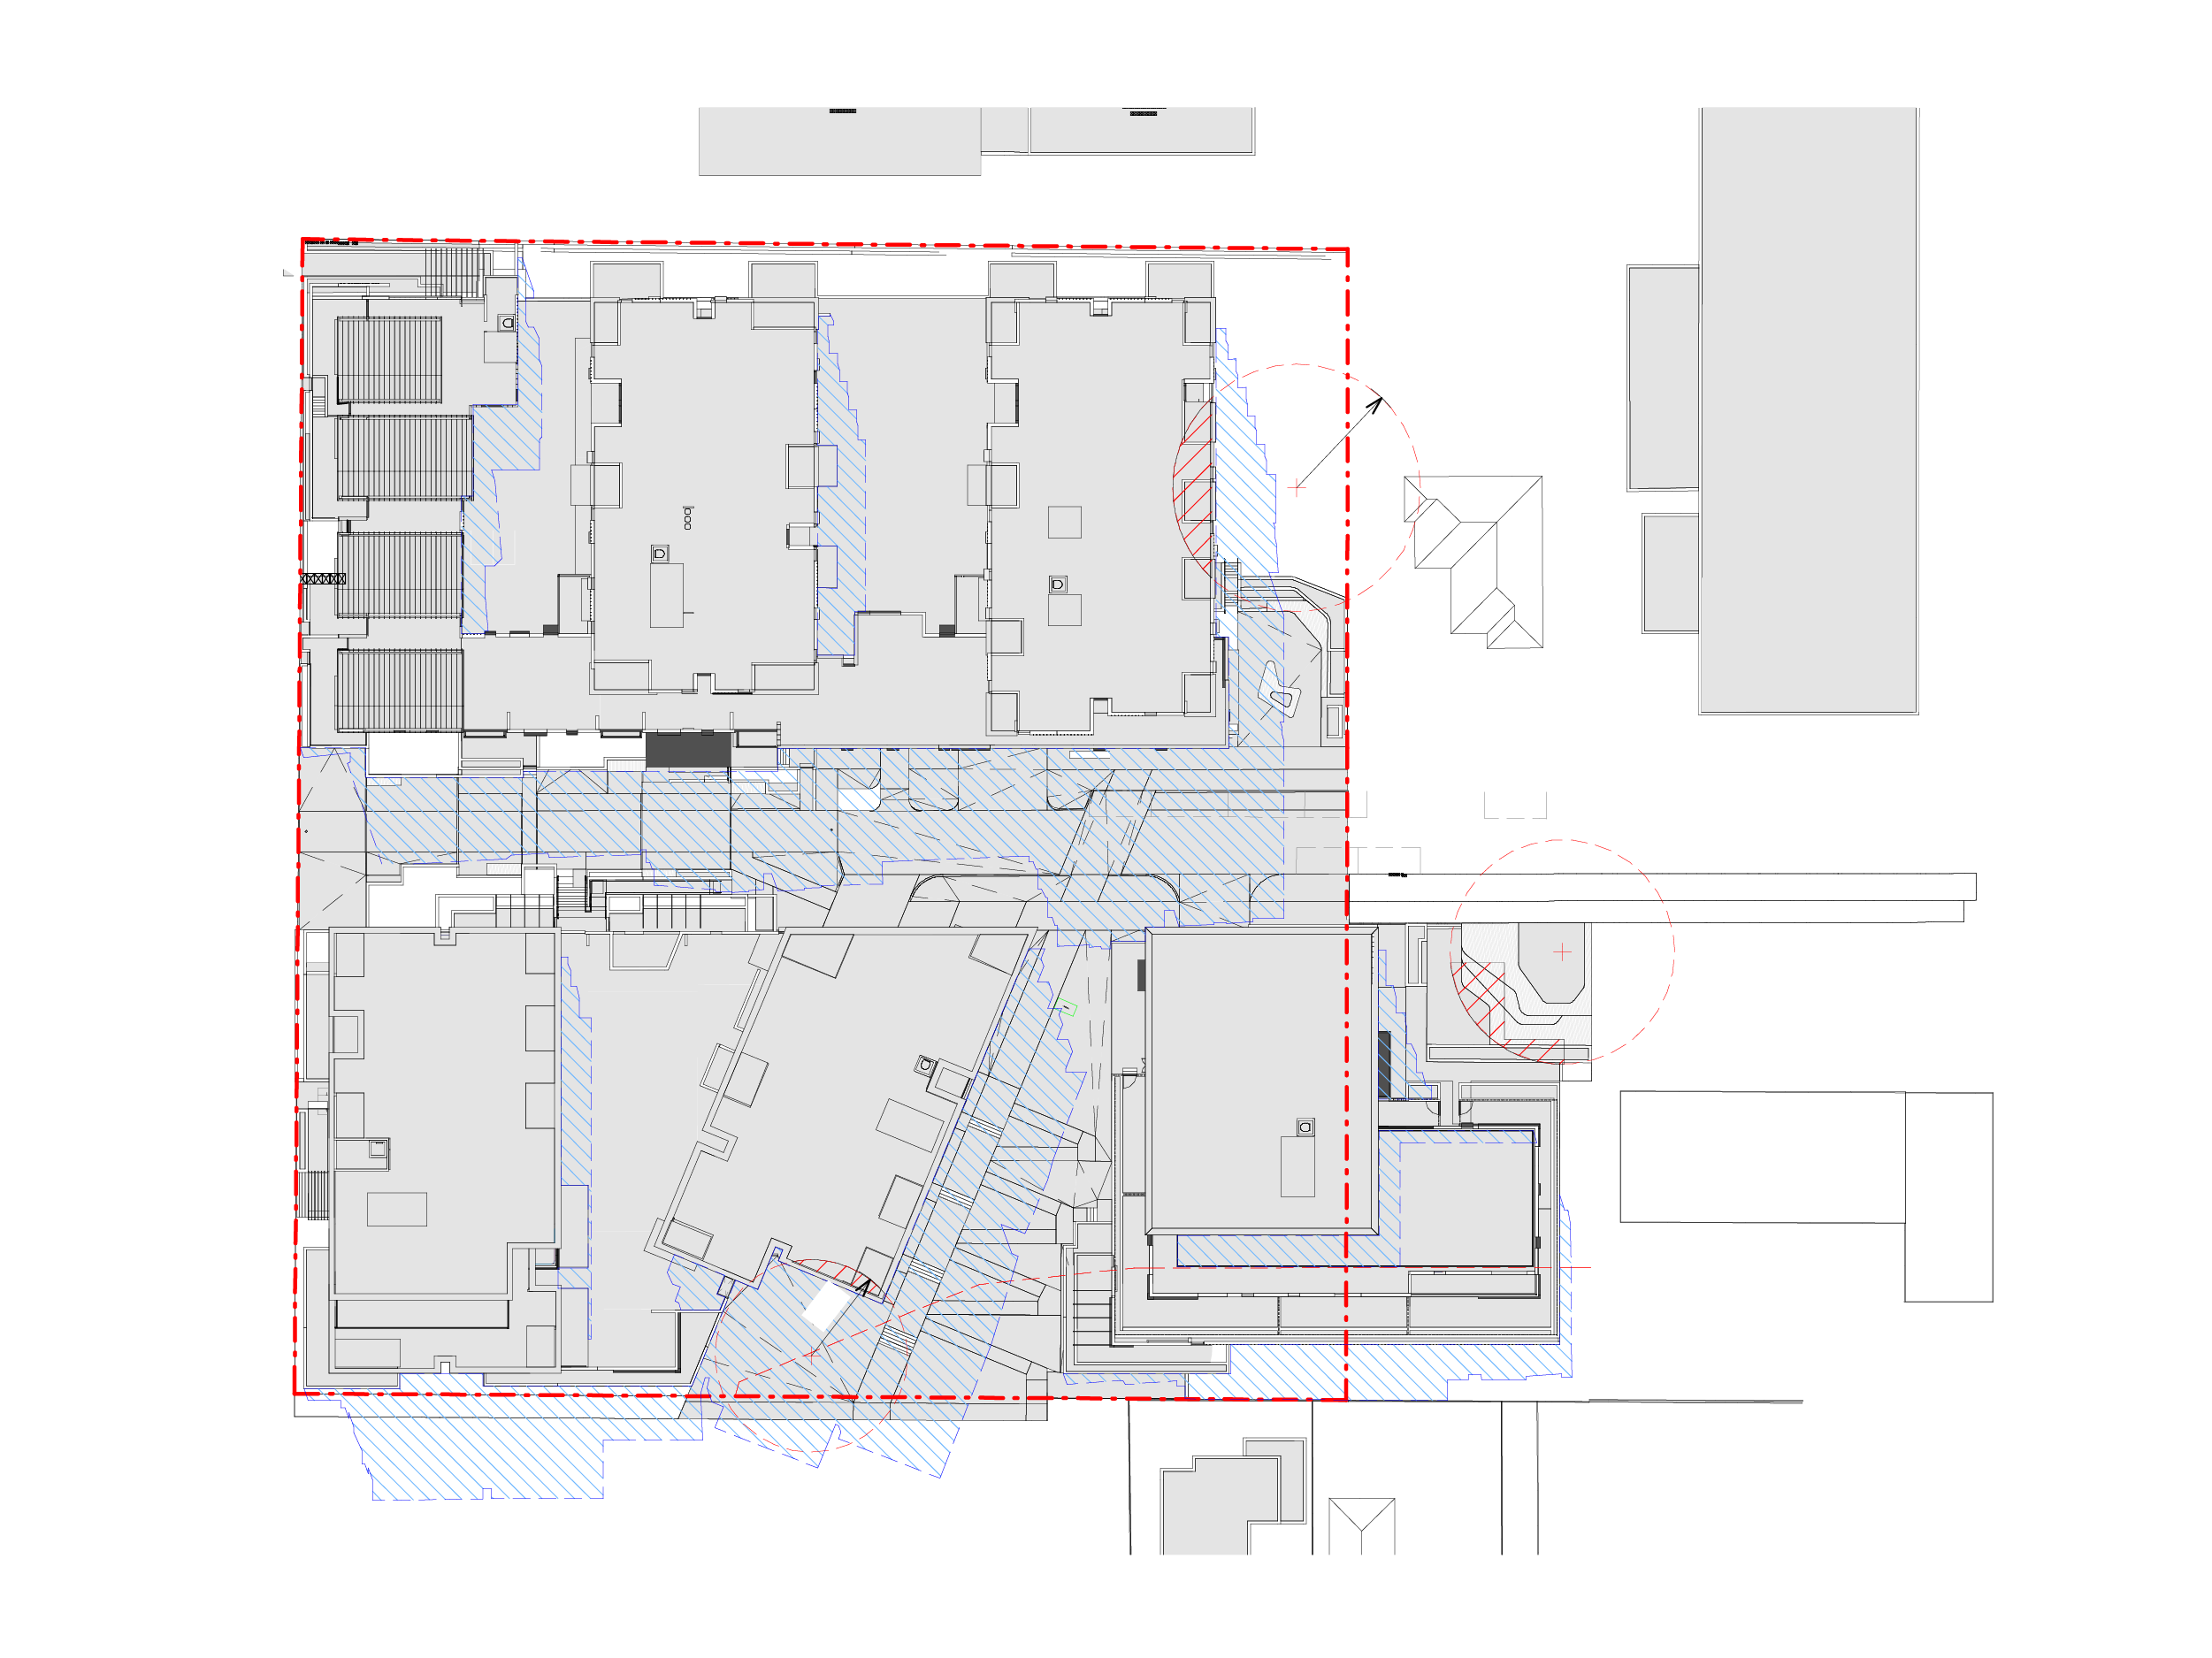 Diagram showing the shadows created by the new Bills Street development on 22 September at 1pm